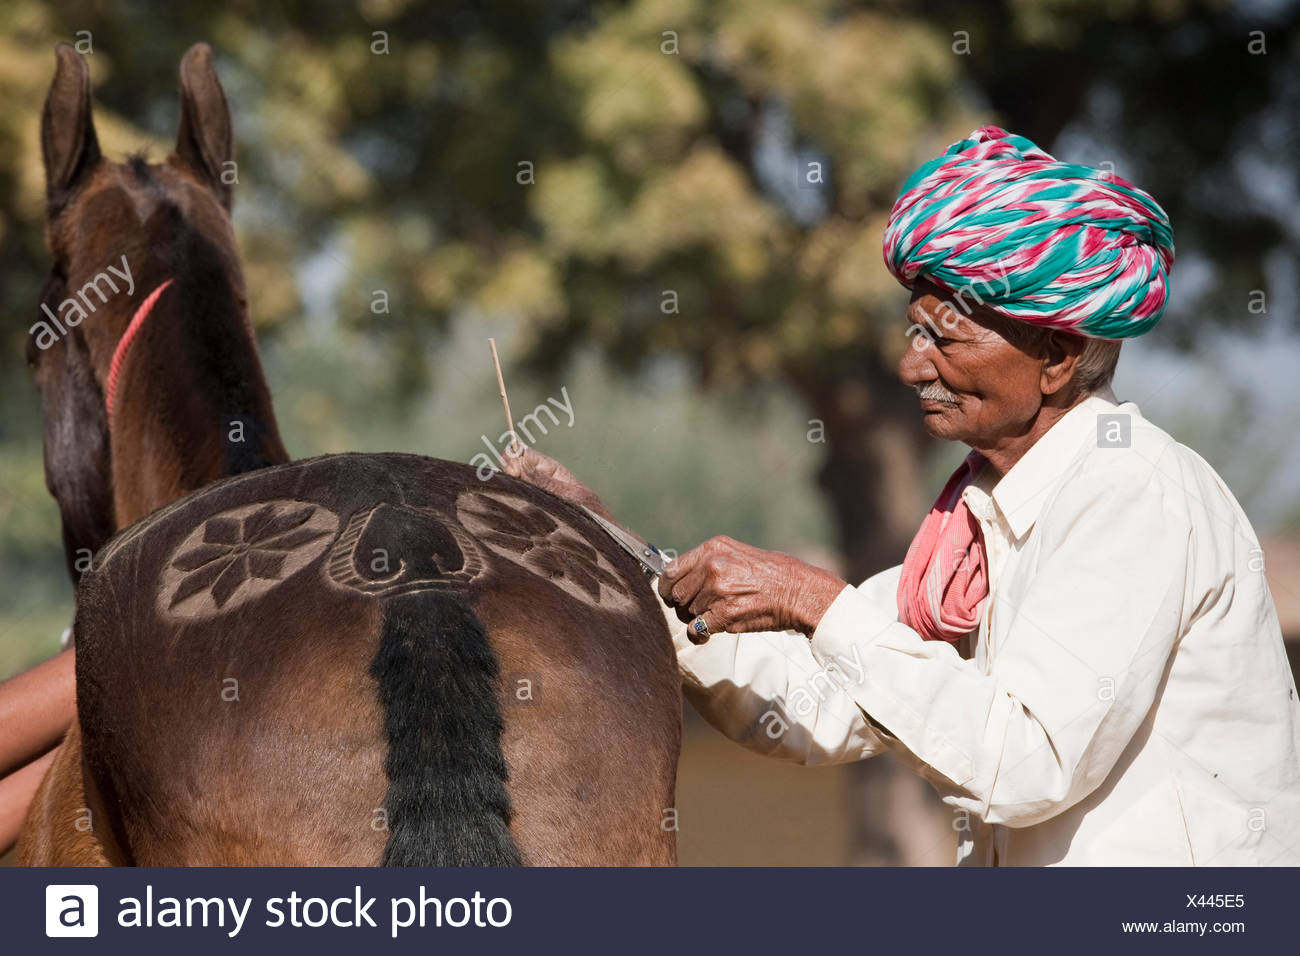 Marwari Horse. Old man clipping decorative patterns into the fur of a horse. Rajasthan, India - Stock Image